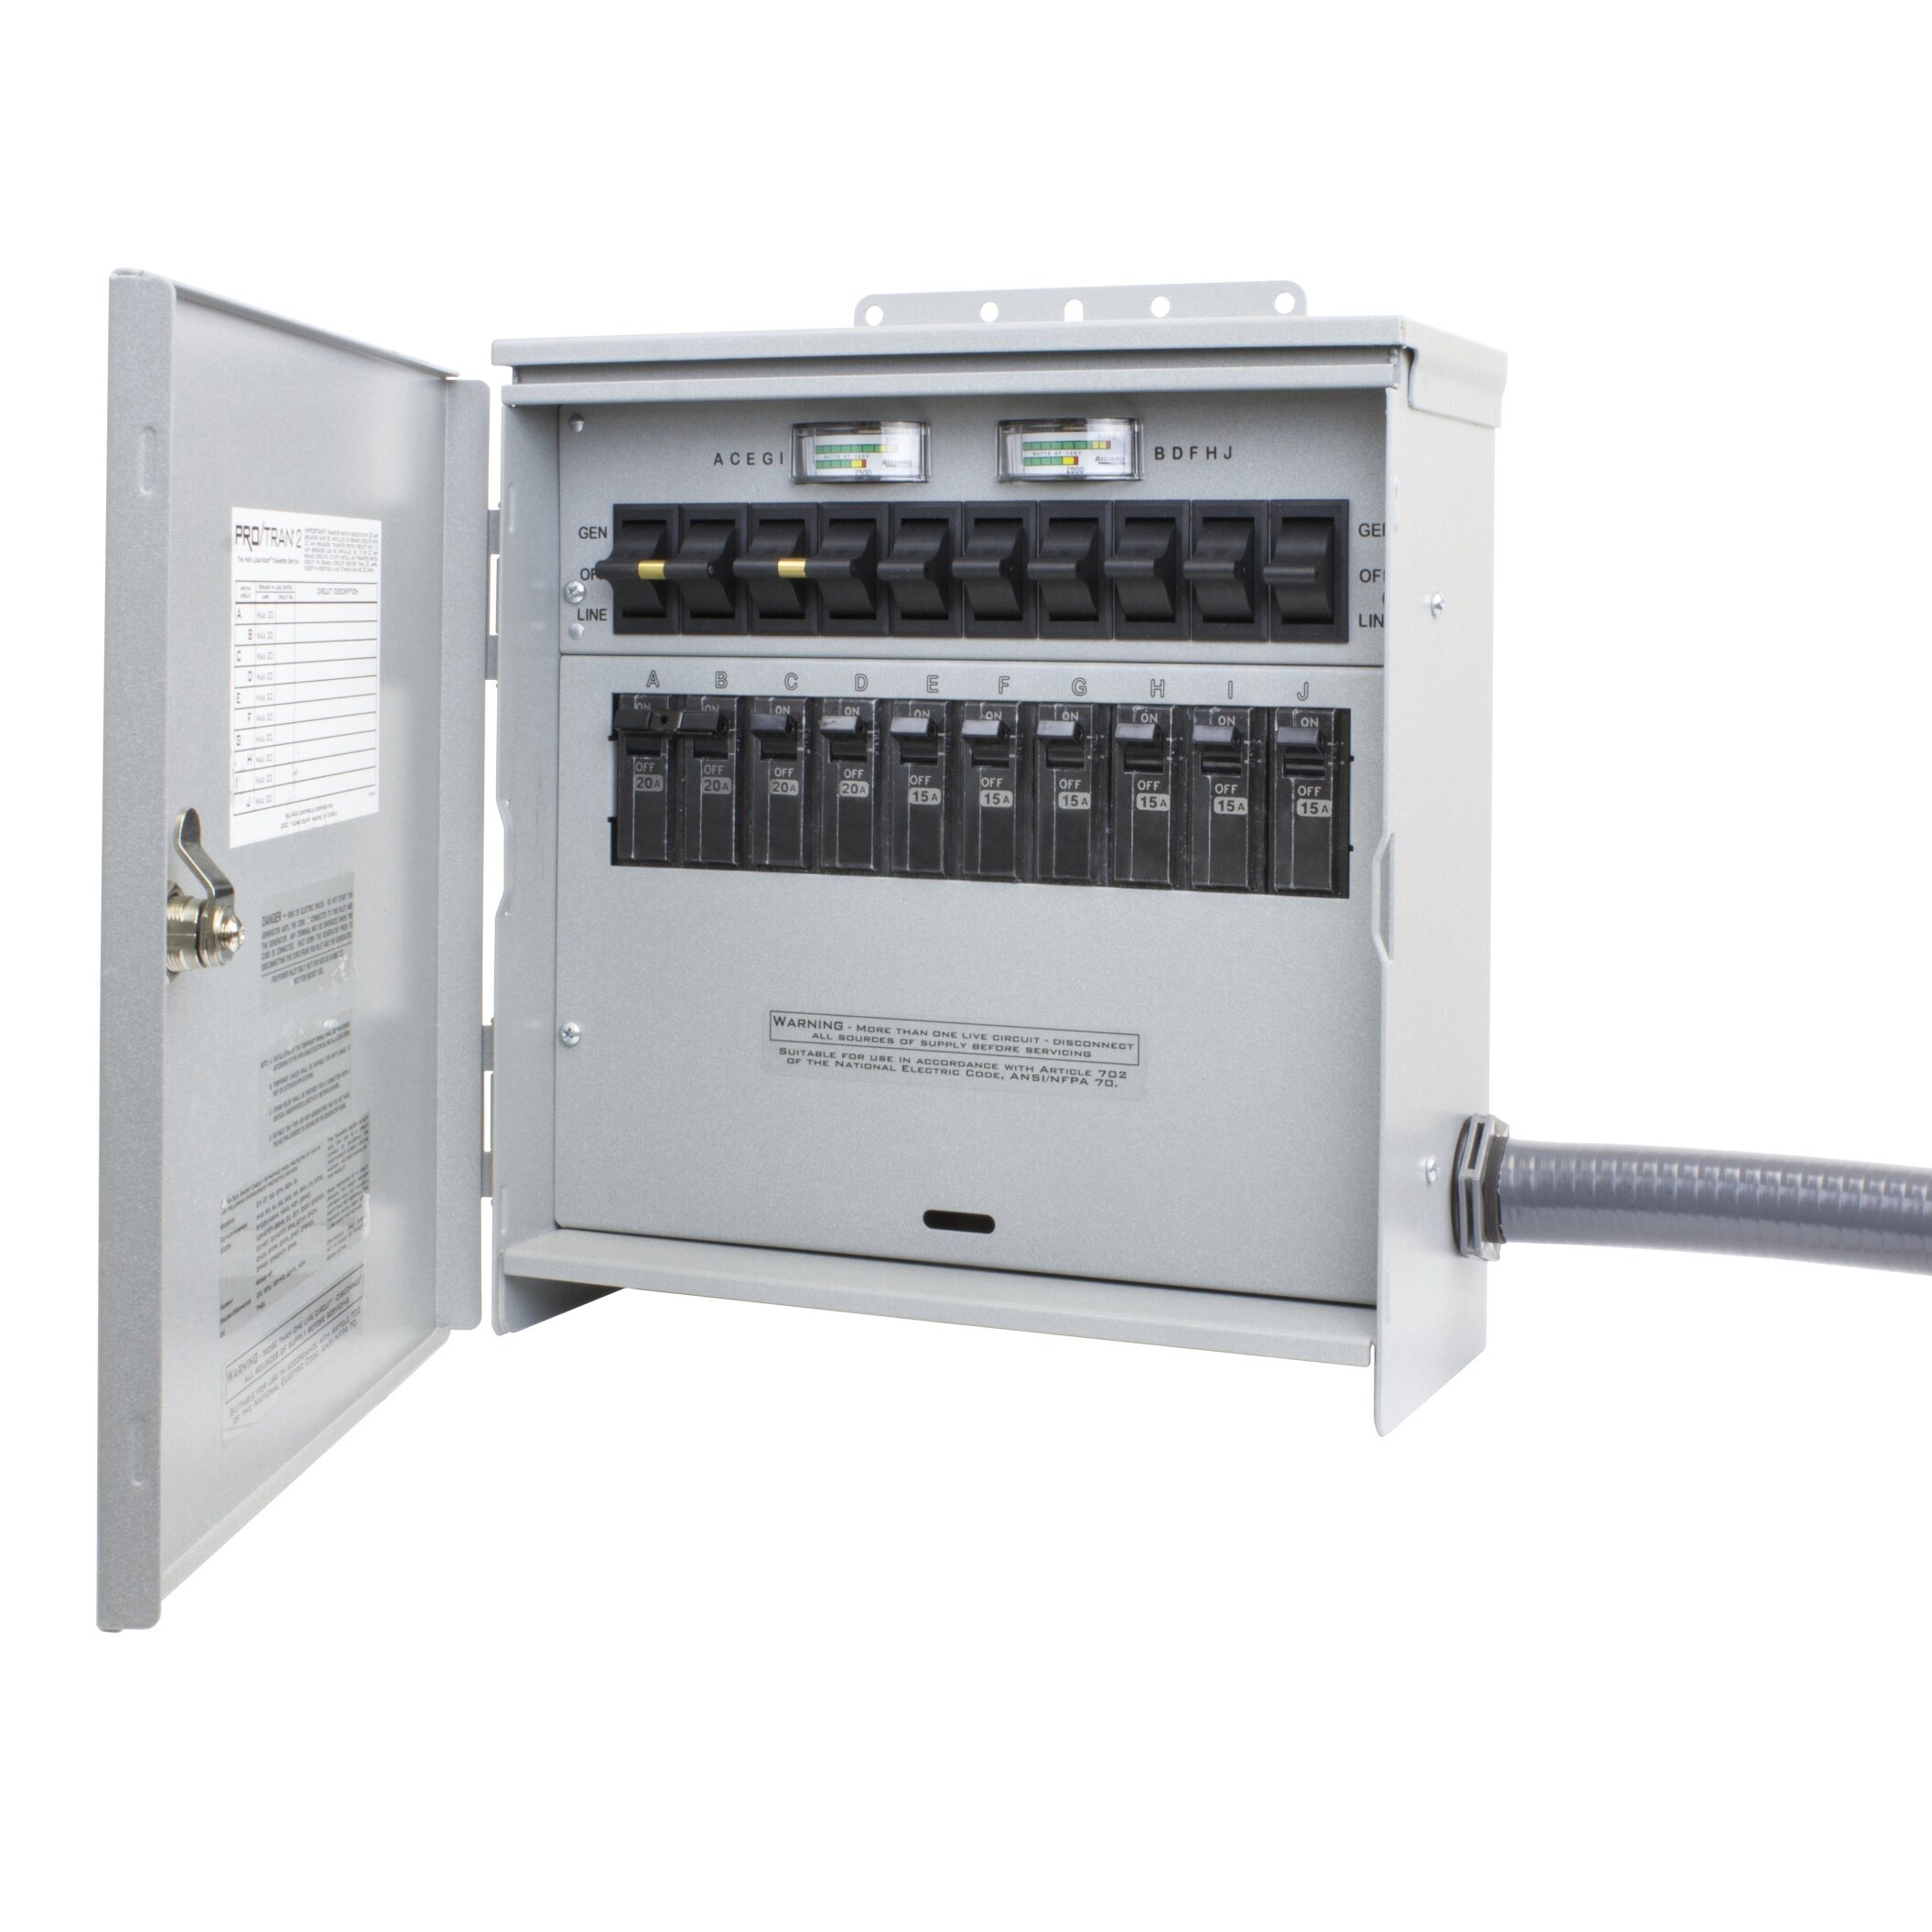 To Get Information about Reliance Generator Transfer Switch 10 Circuit